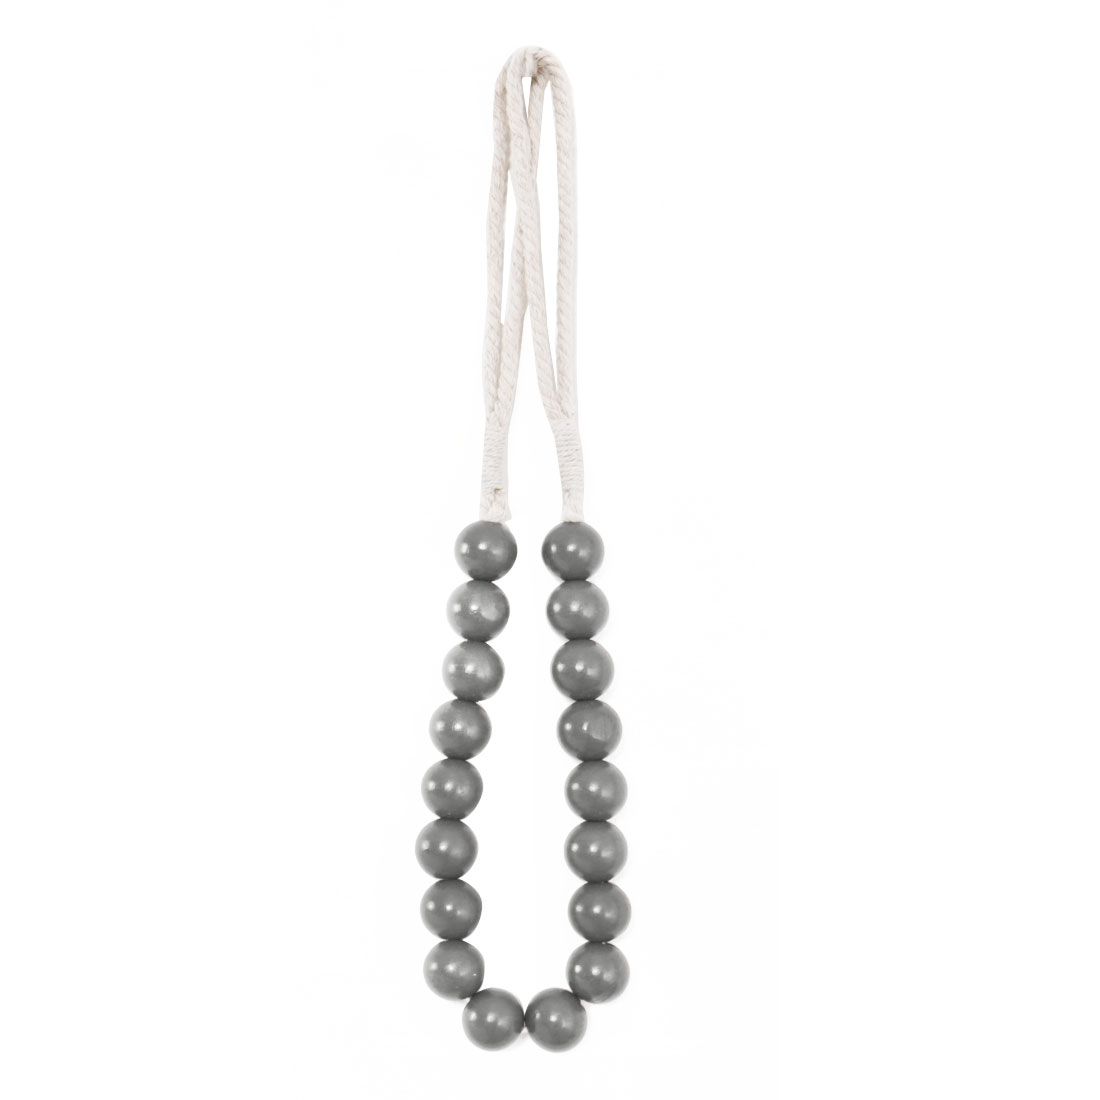 Wooden Beads Curtain Tieback Holdback Decorative Rope Curtain Holder, Gray